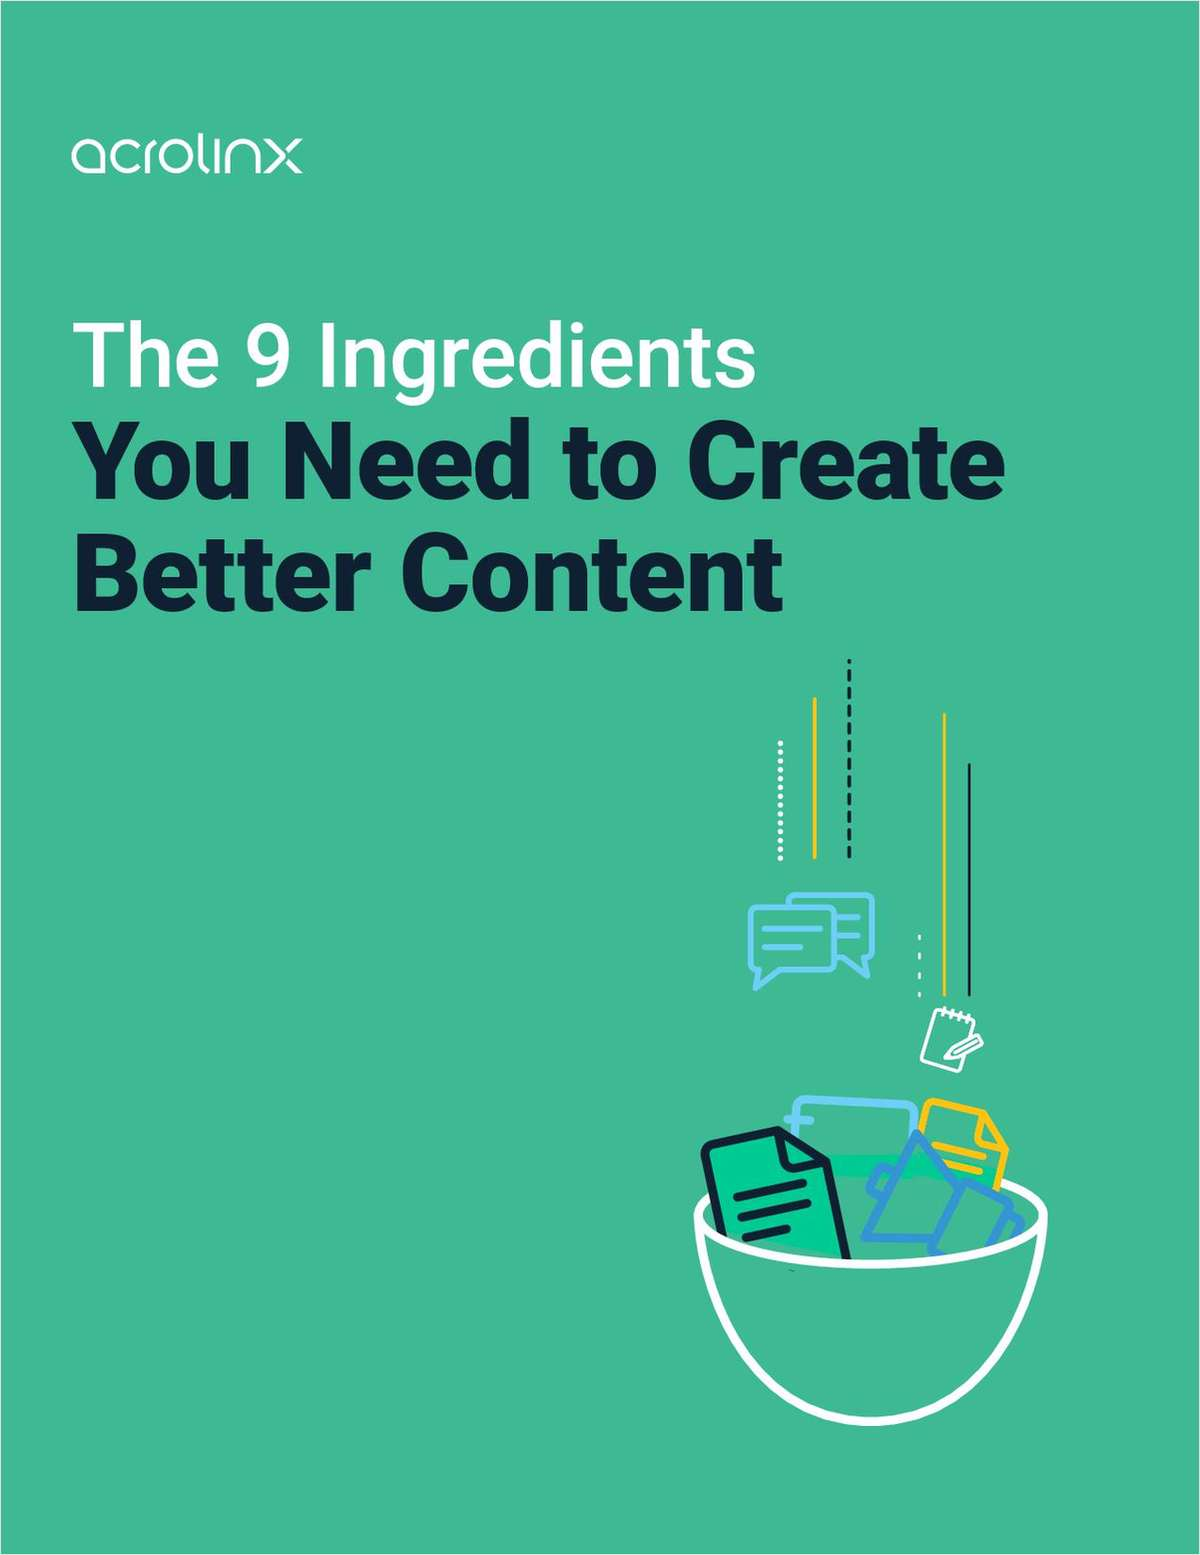 9 Ingredients You Need to Create Better Content